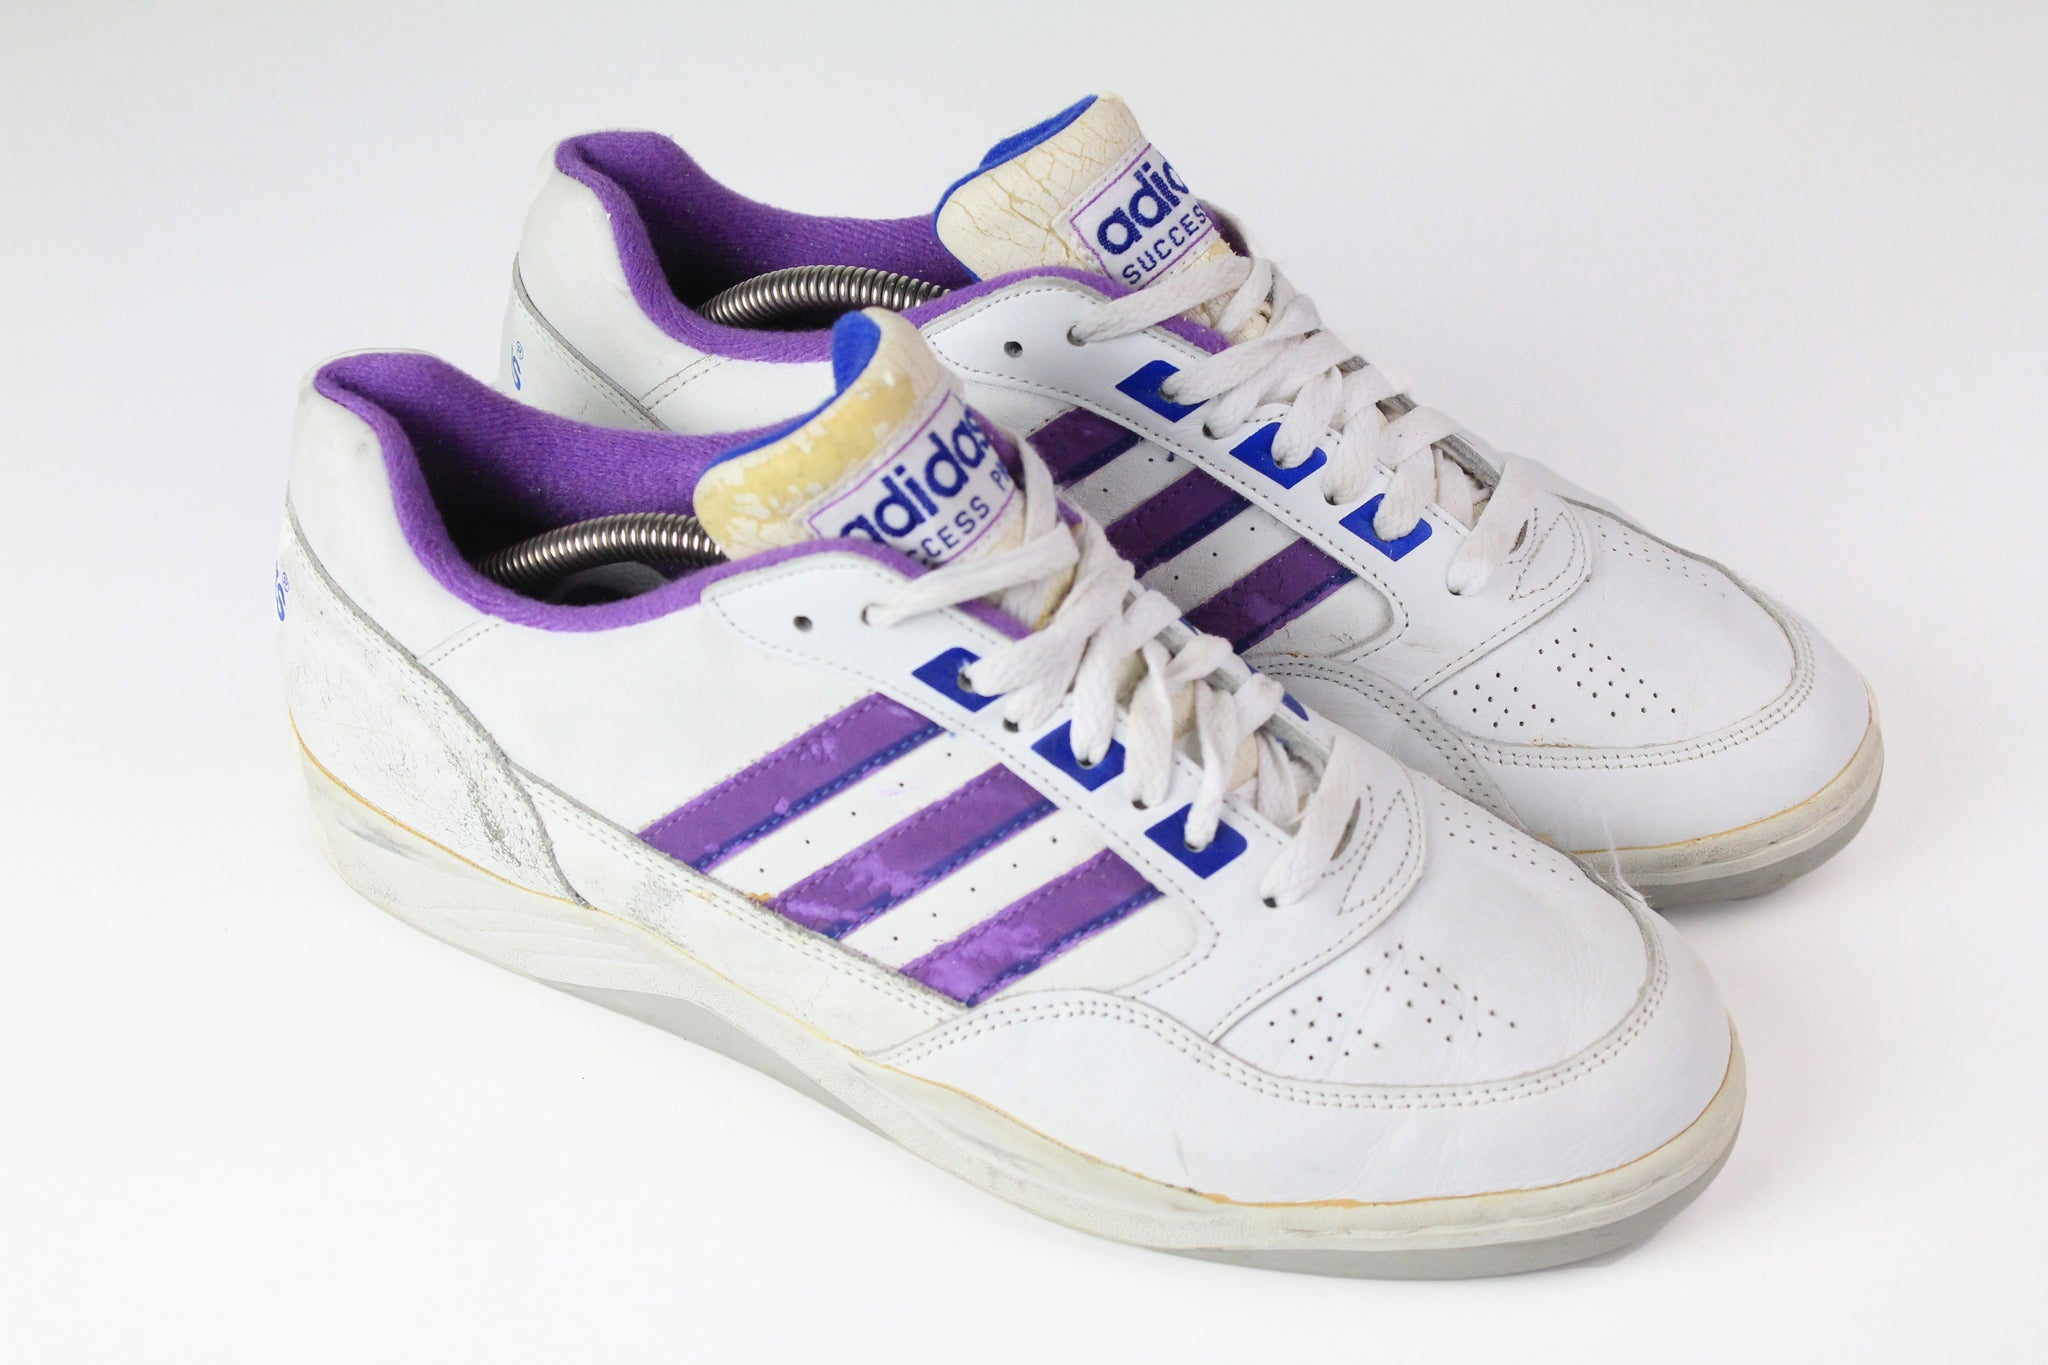 032674 vintage Adidas Success Pro Sneakers white 90s 80s made in Korea retro style tennis shoes